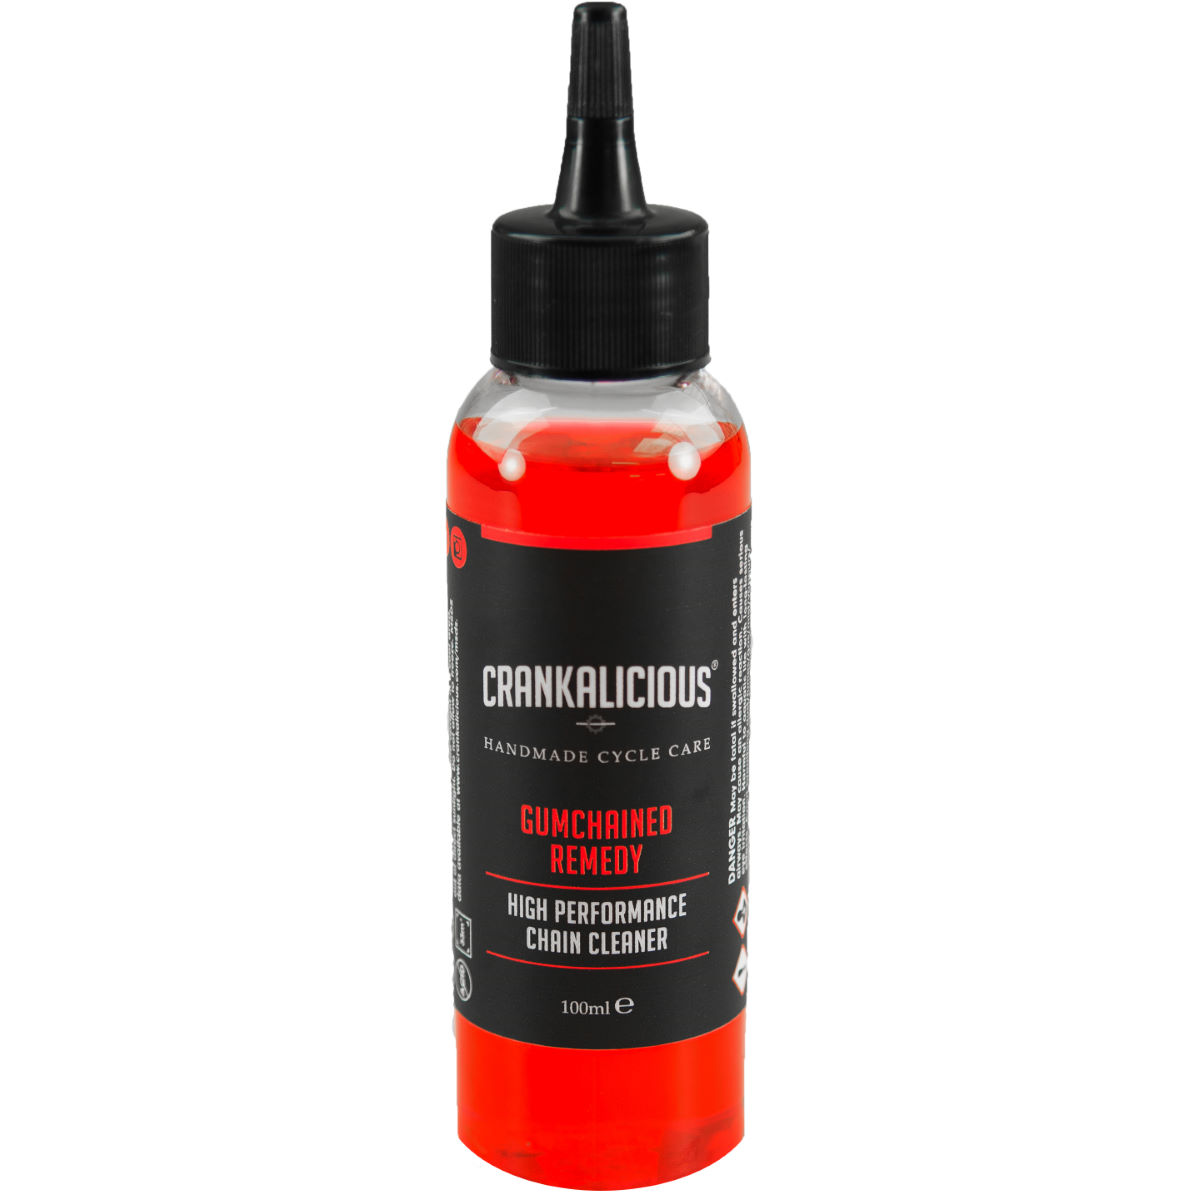 Crankalicious Gumchained Remedy Chain Cleaner   Cleaning Products